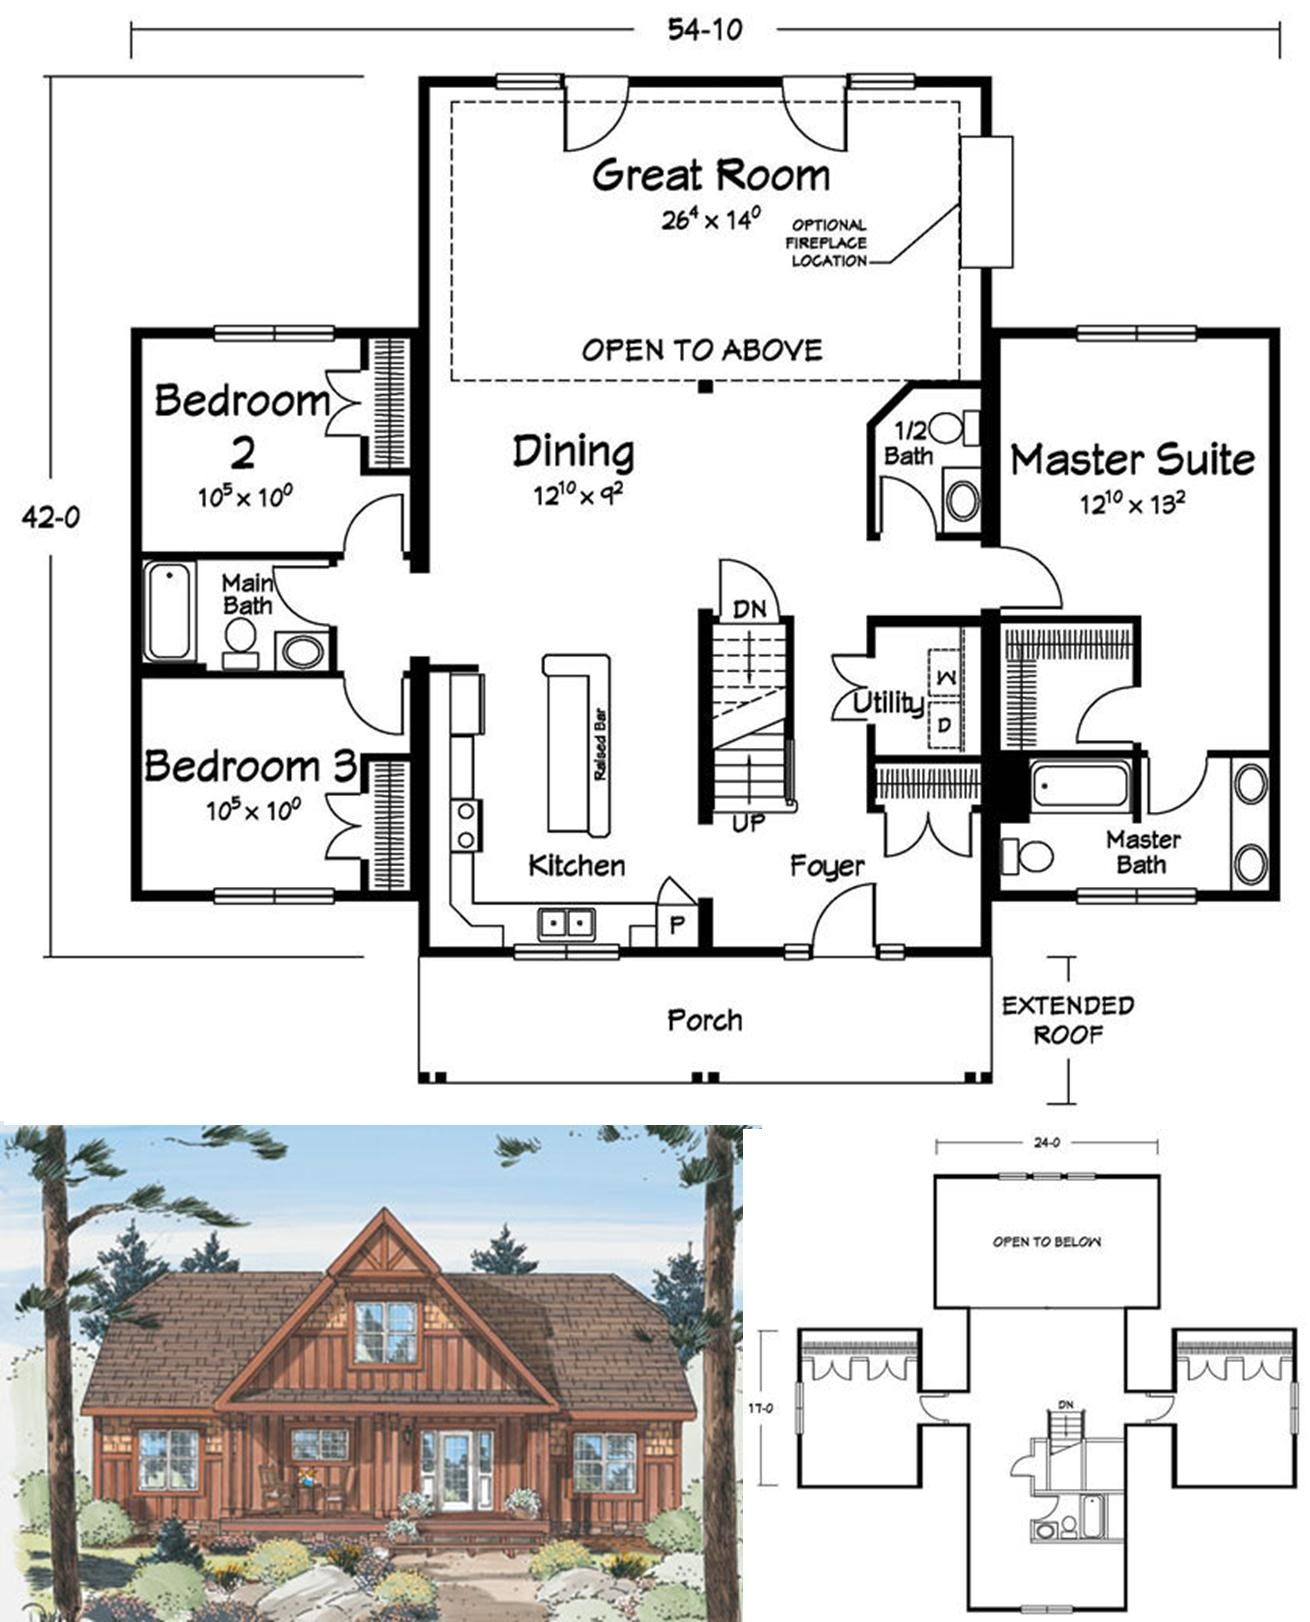 Spacious Can T Even Describe This Plan Check Out The Great Room Floor Plans Modular Home Manufacturers Modular Homes